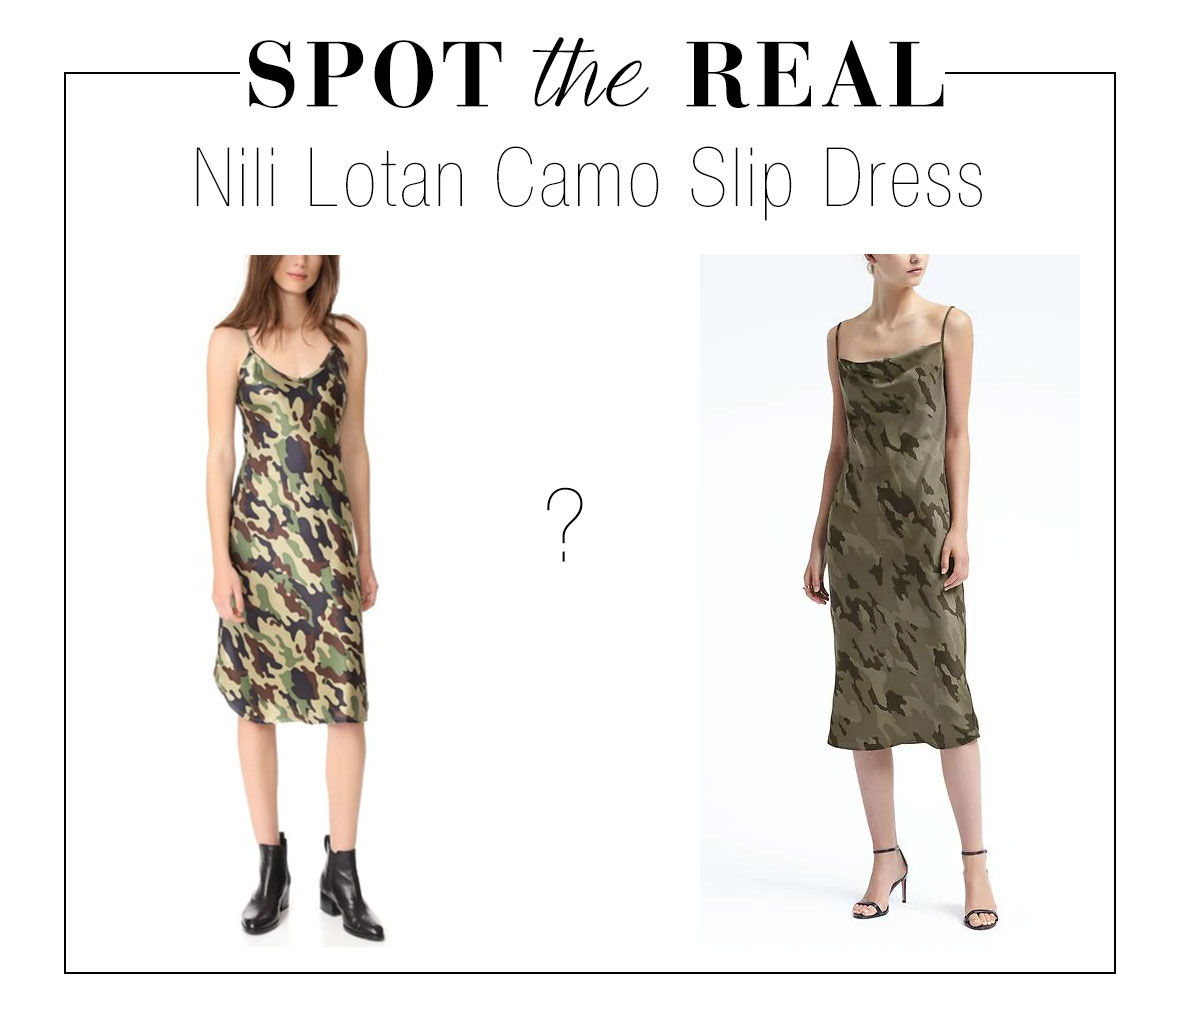 Can you guess which is the real Nili Lotan camo slip dress?